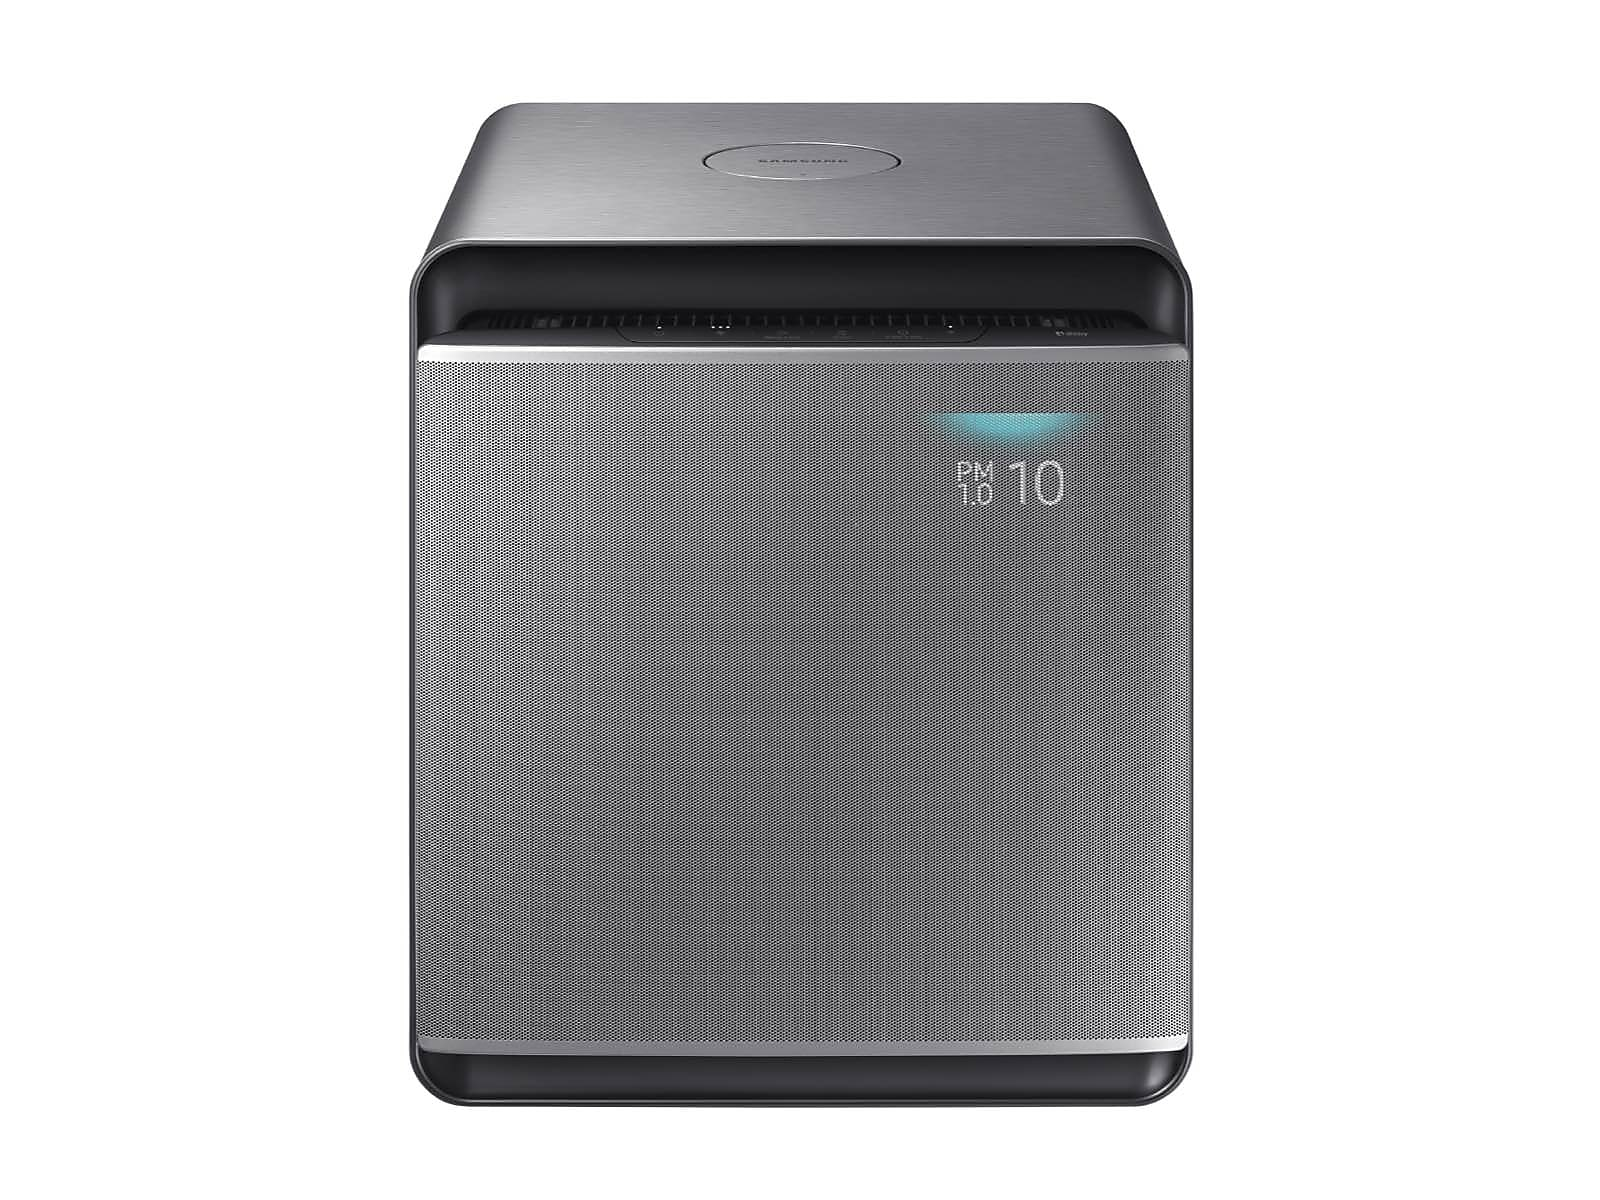 Samsung coupon: Samsung Cube Smart Air Purifier with Wind-Free Air Purification in Honed in Silver(AX300T9080S/AA)